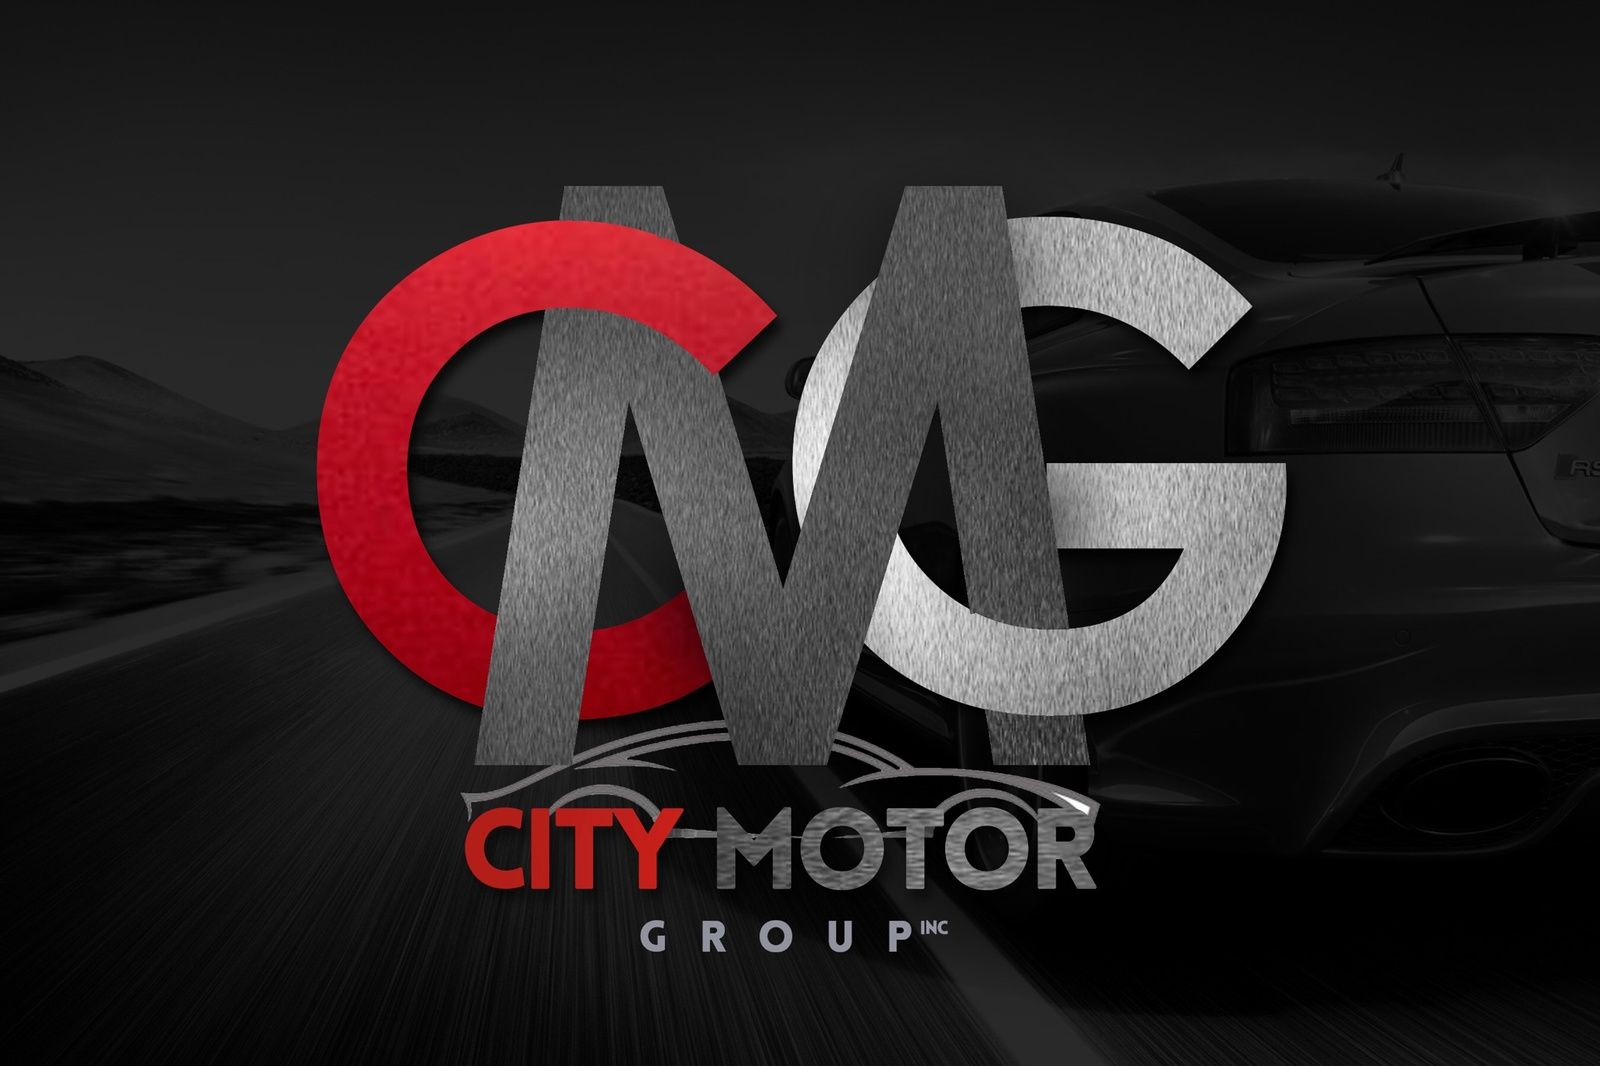 City Motor Group Haskell Nj Read Consumer Reviews